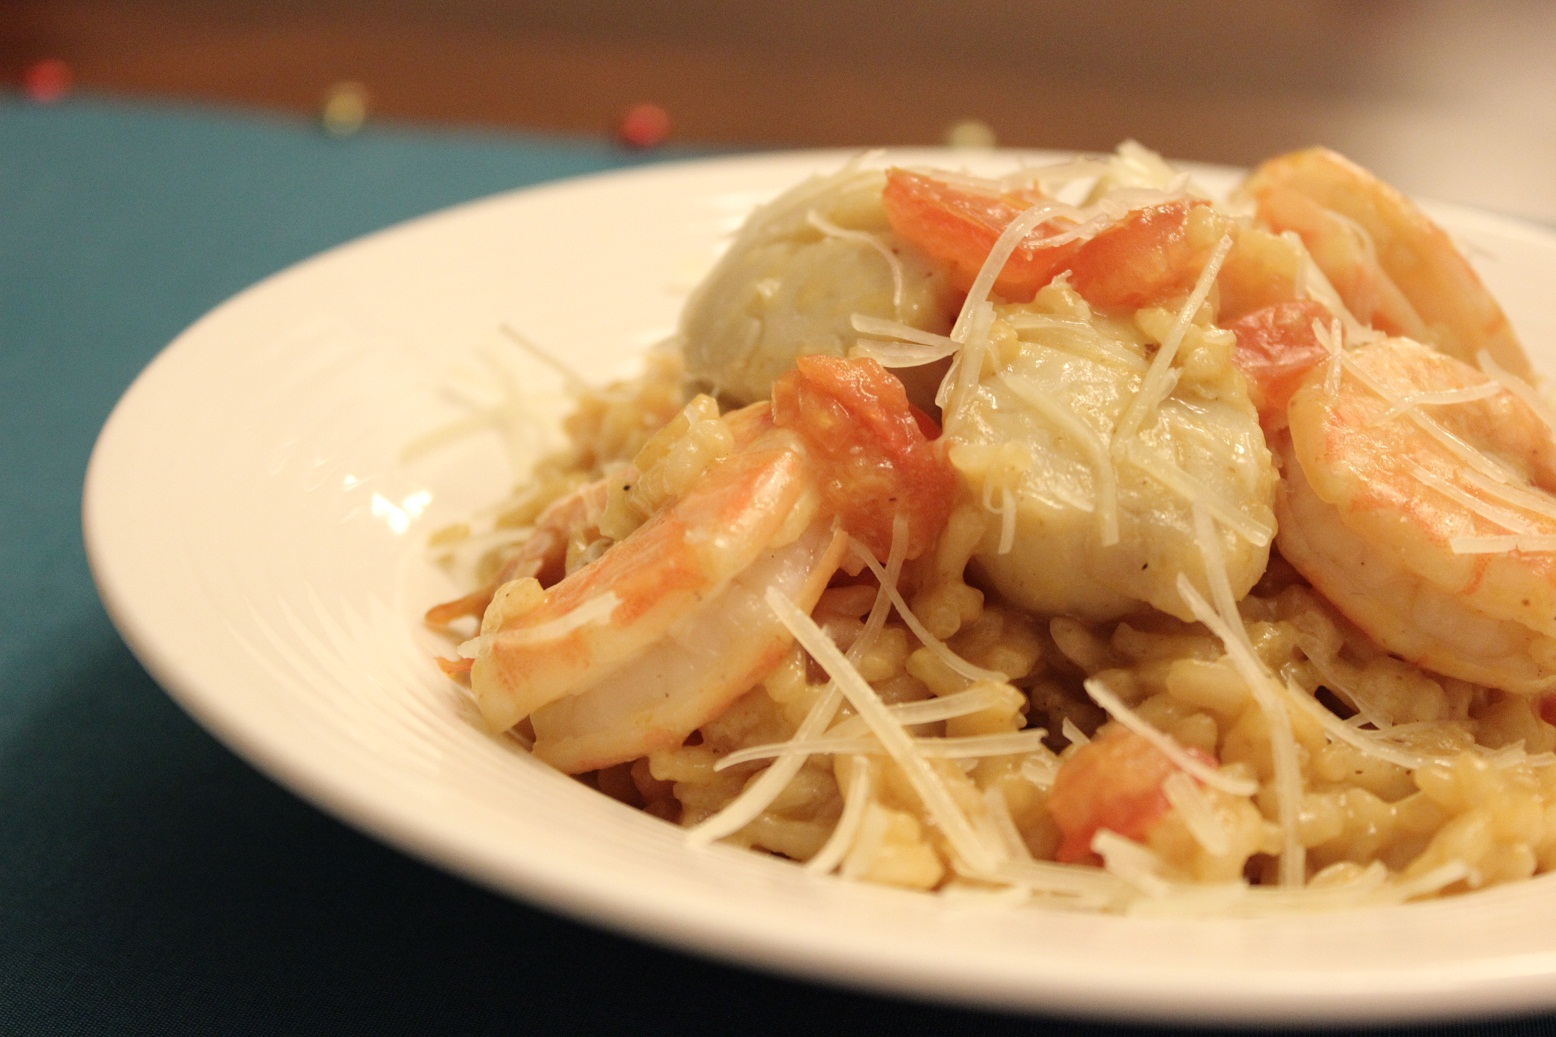 ... 24, 2012 at 1556 × 1037 in Seafood Risotto with Shrimp and Scallops